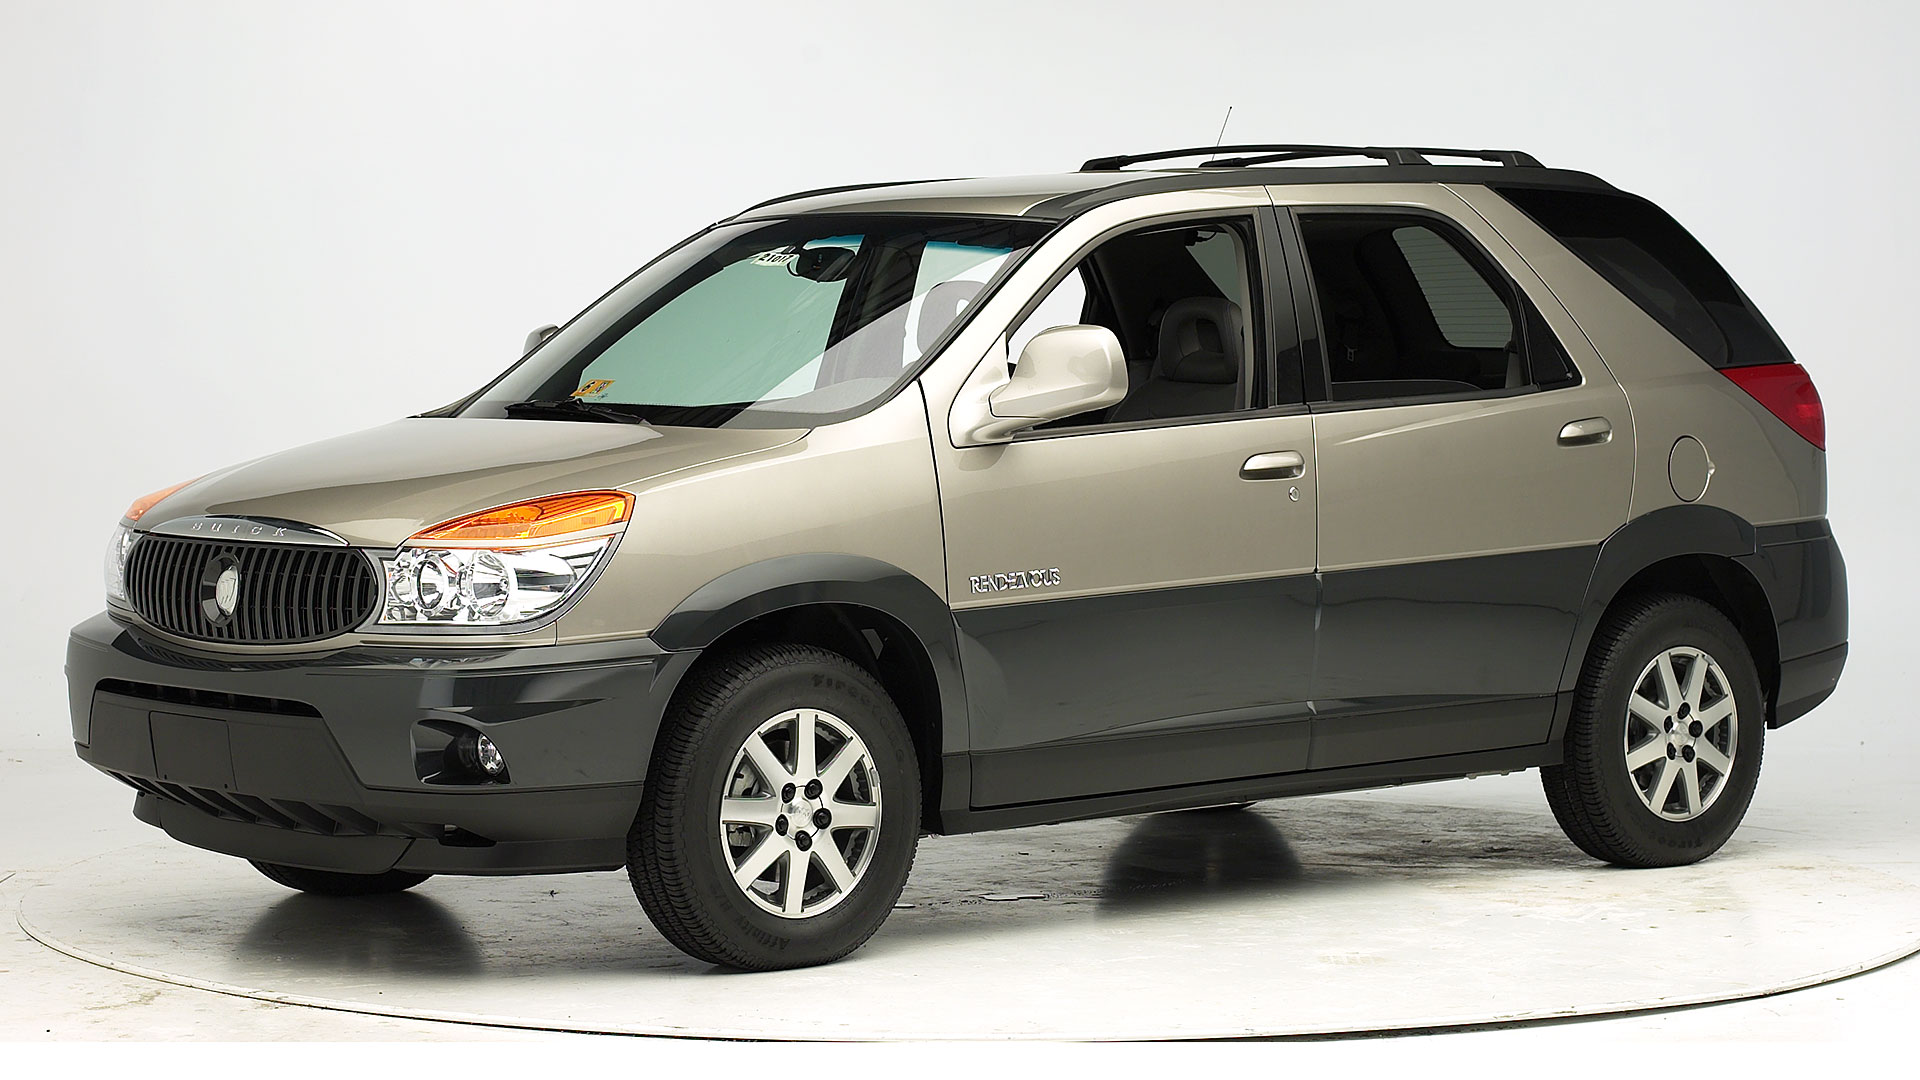 2006 Buick Rendezvous 4-door SUV